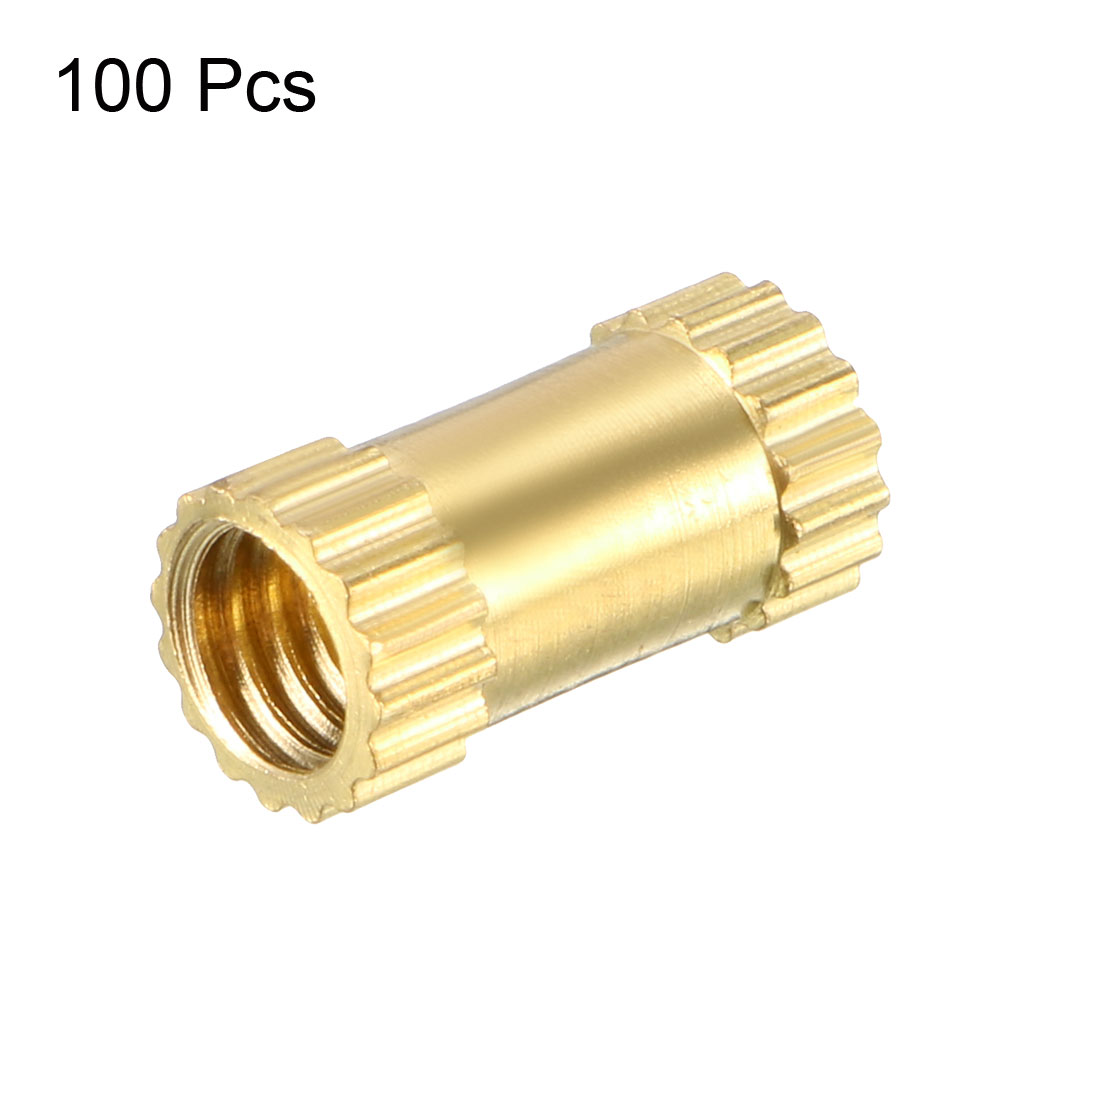 M4 x 10mm(L) x 5mm(OD) Brass Knurled Threaded Insert Embedment Nuts, 100 Pcs - image 2 de 3